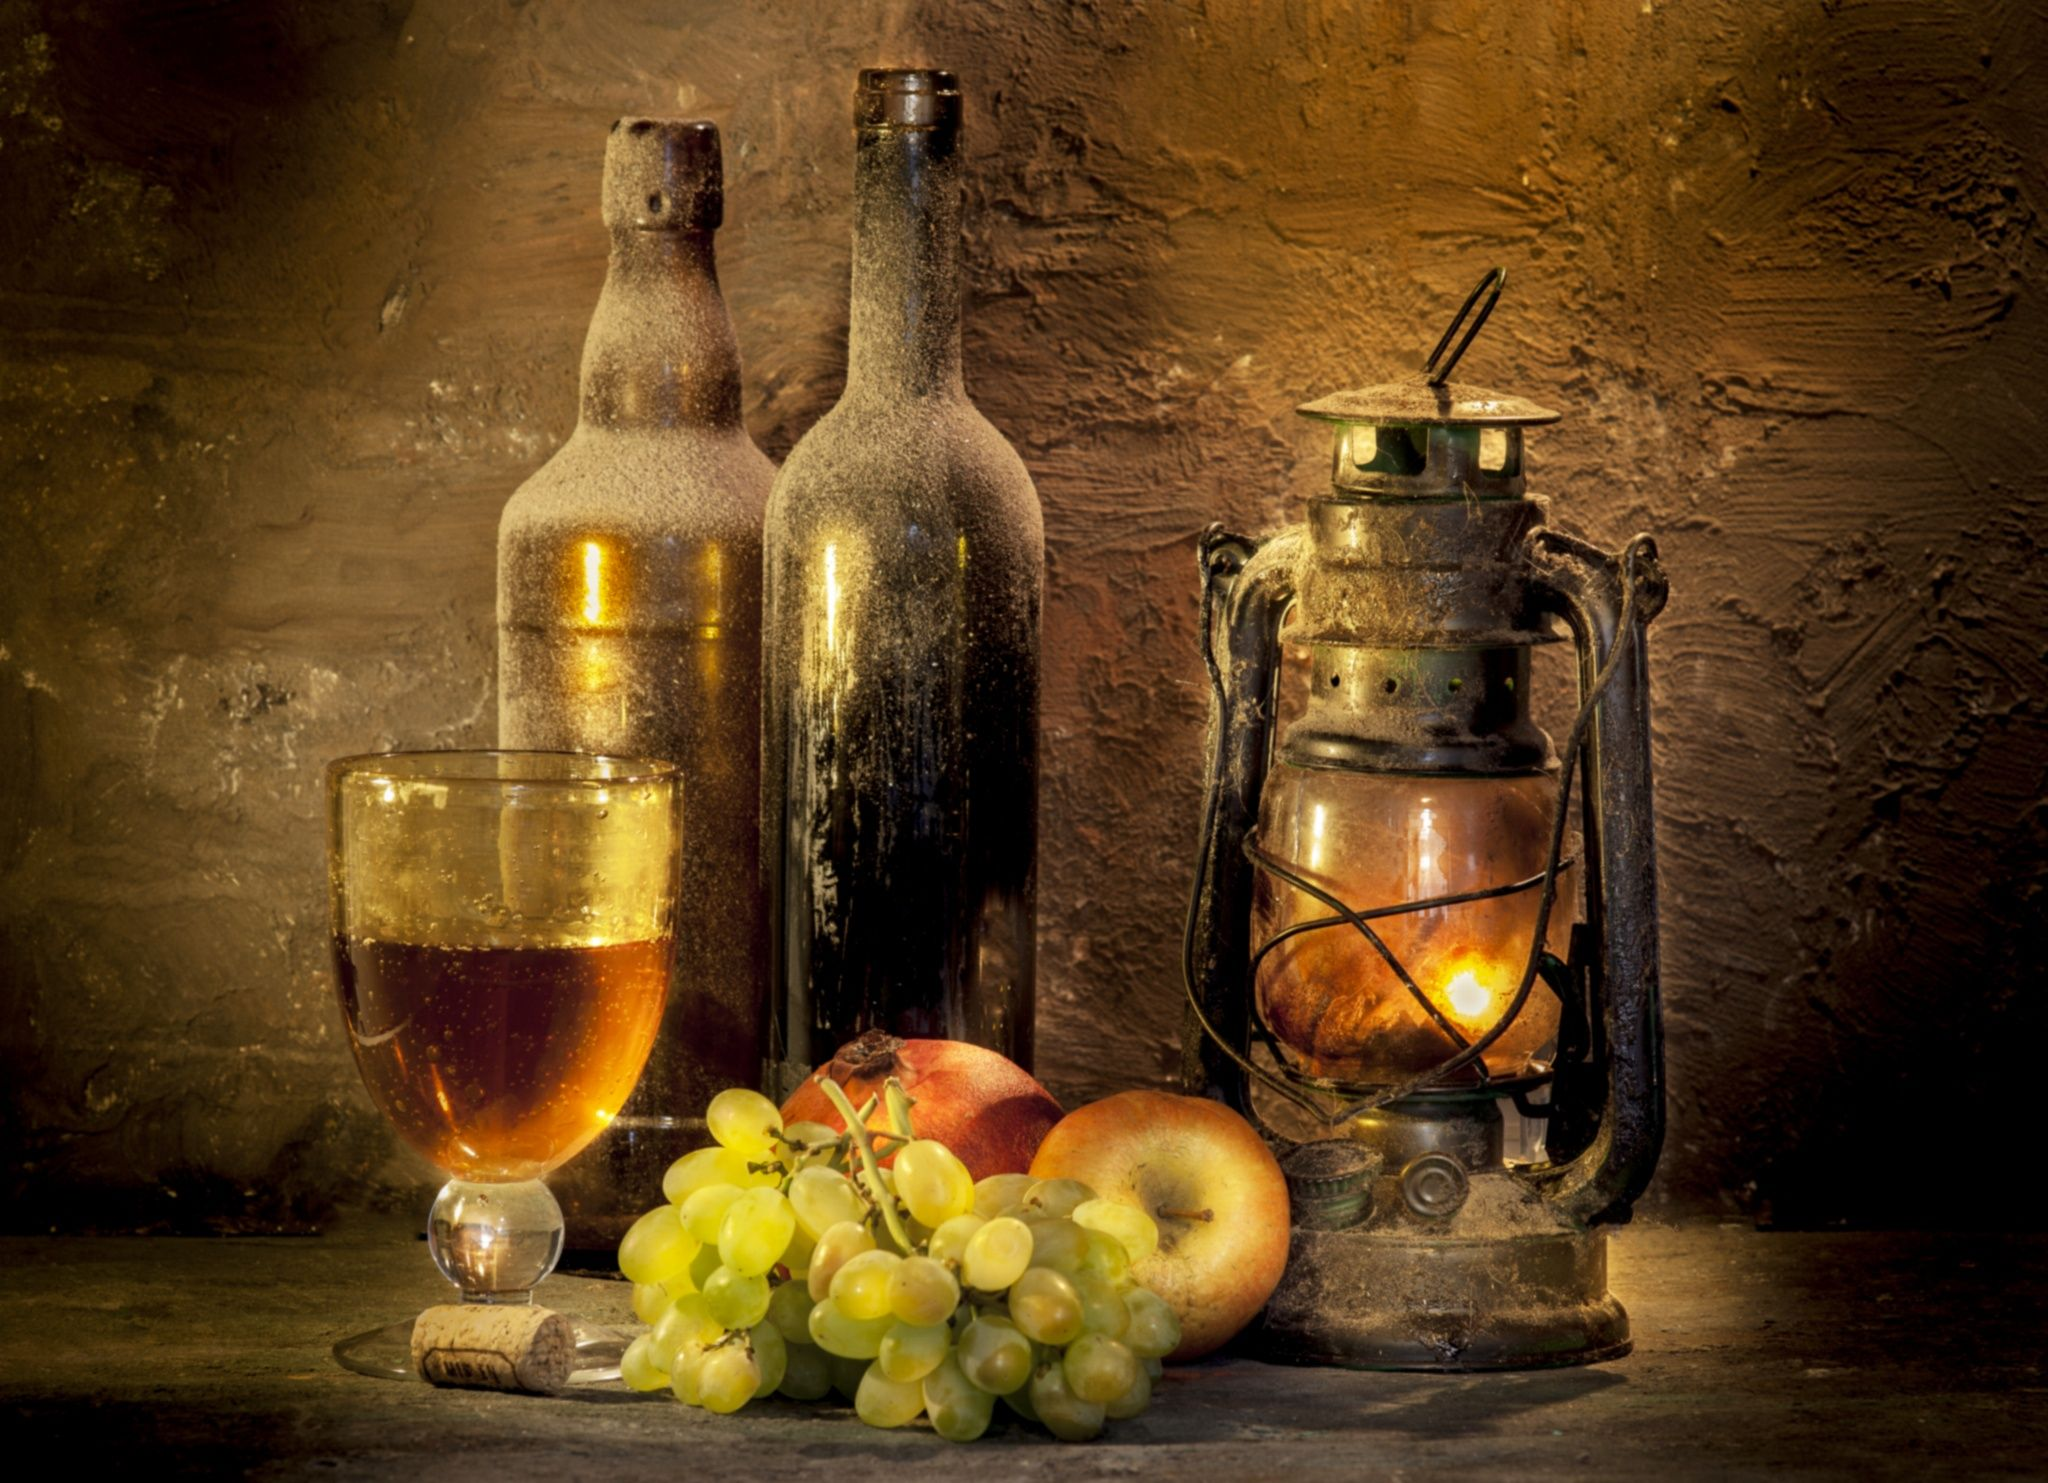 Still Life Photography  Vintage Wine, By Mostapha Merab Samii